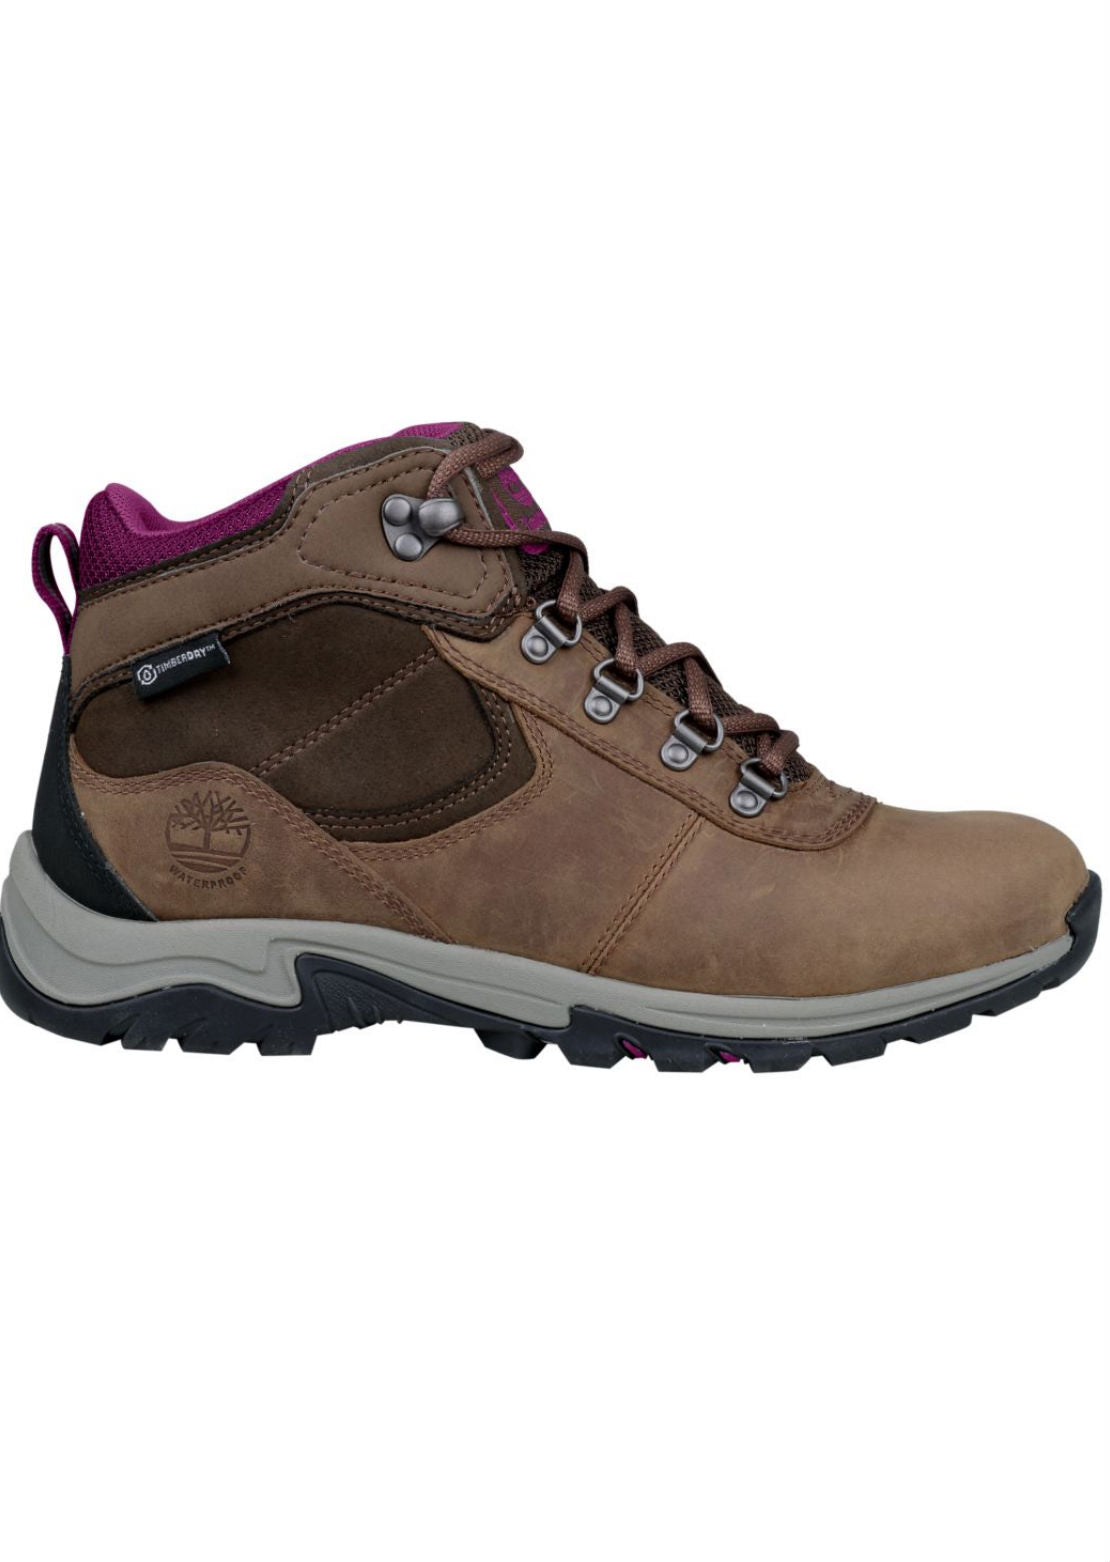 Timberland Women's Maddsen Mid - Brown